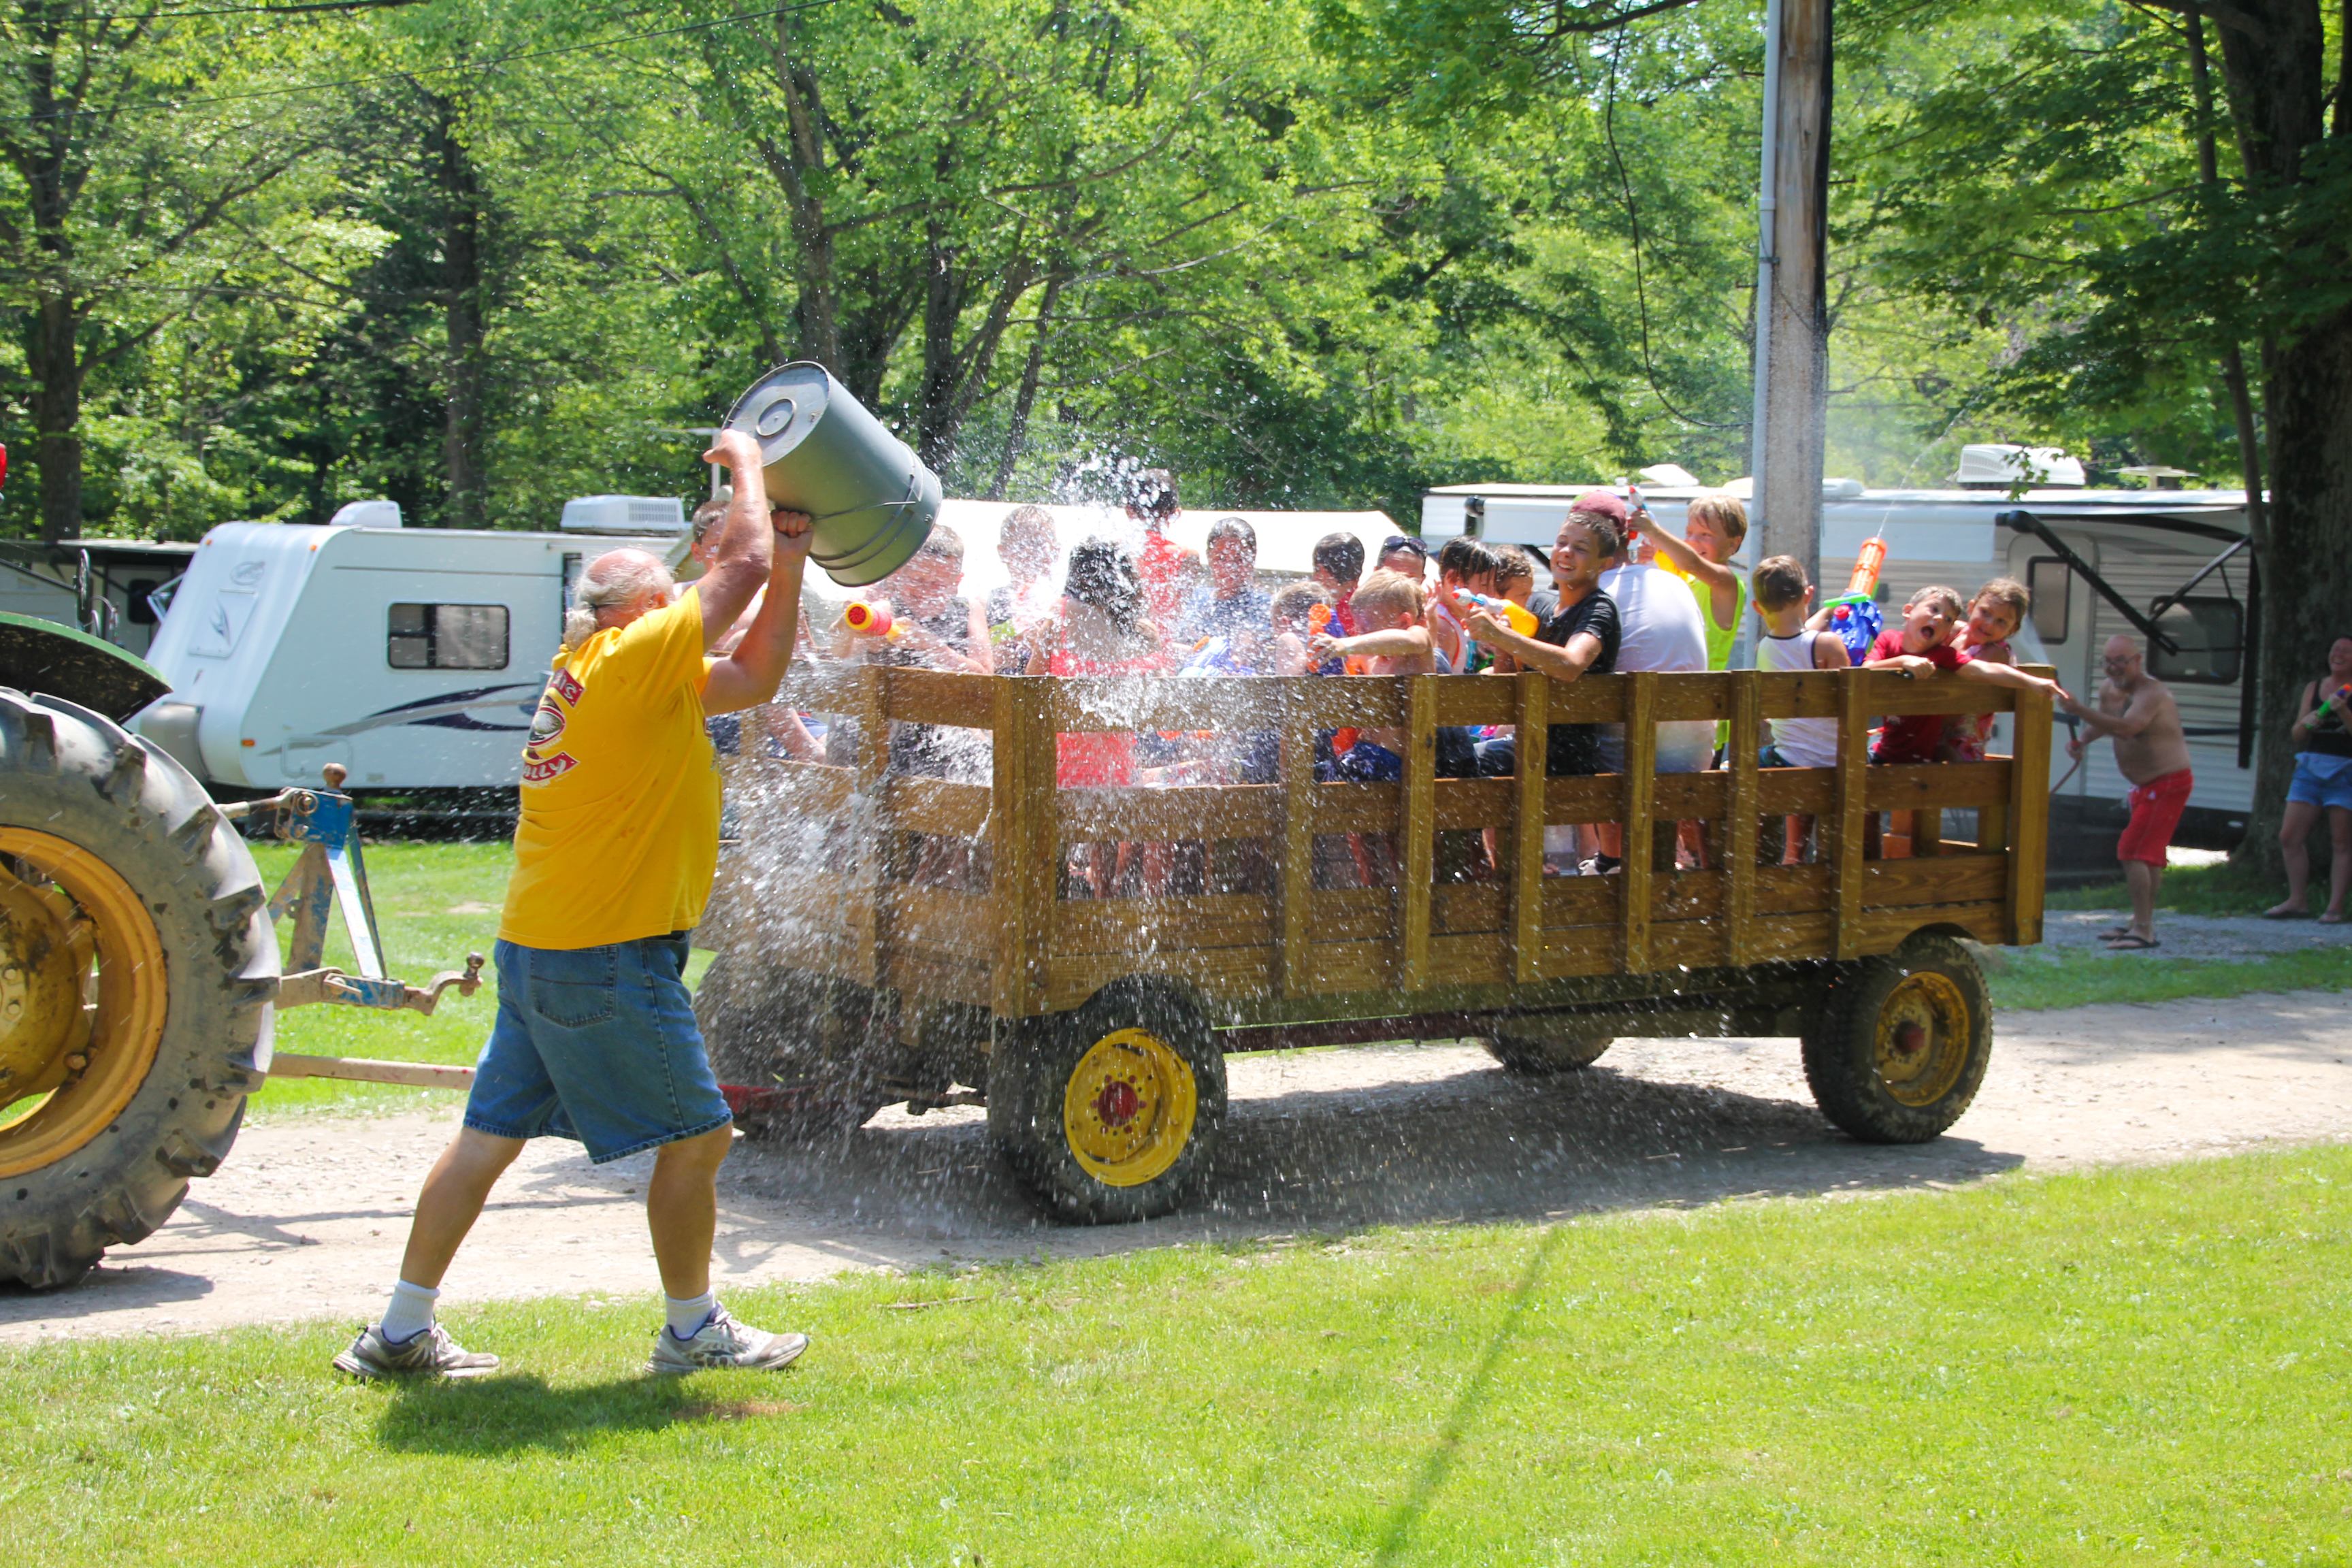 Events for Thompson / Grand River Valley KOA Campground in Ohio